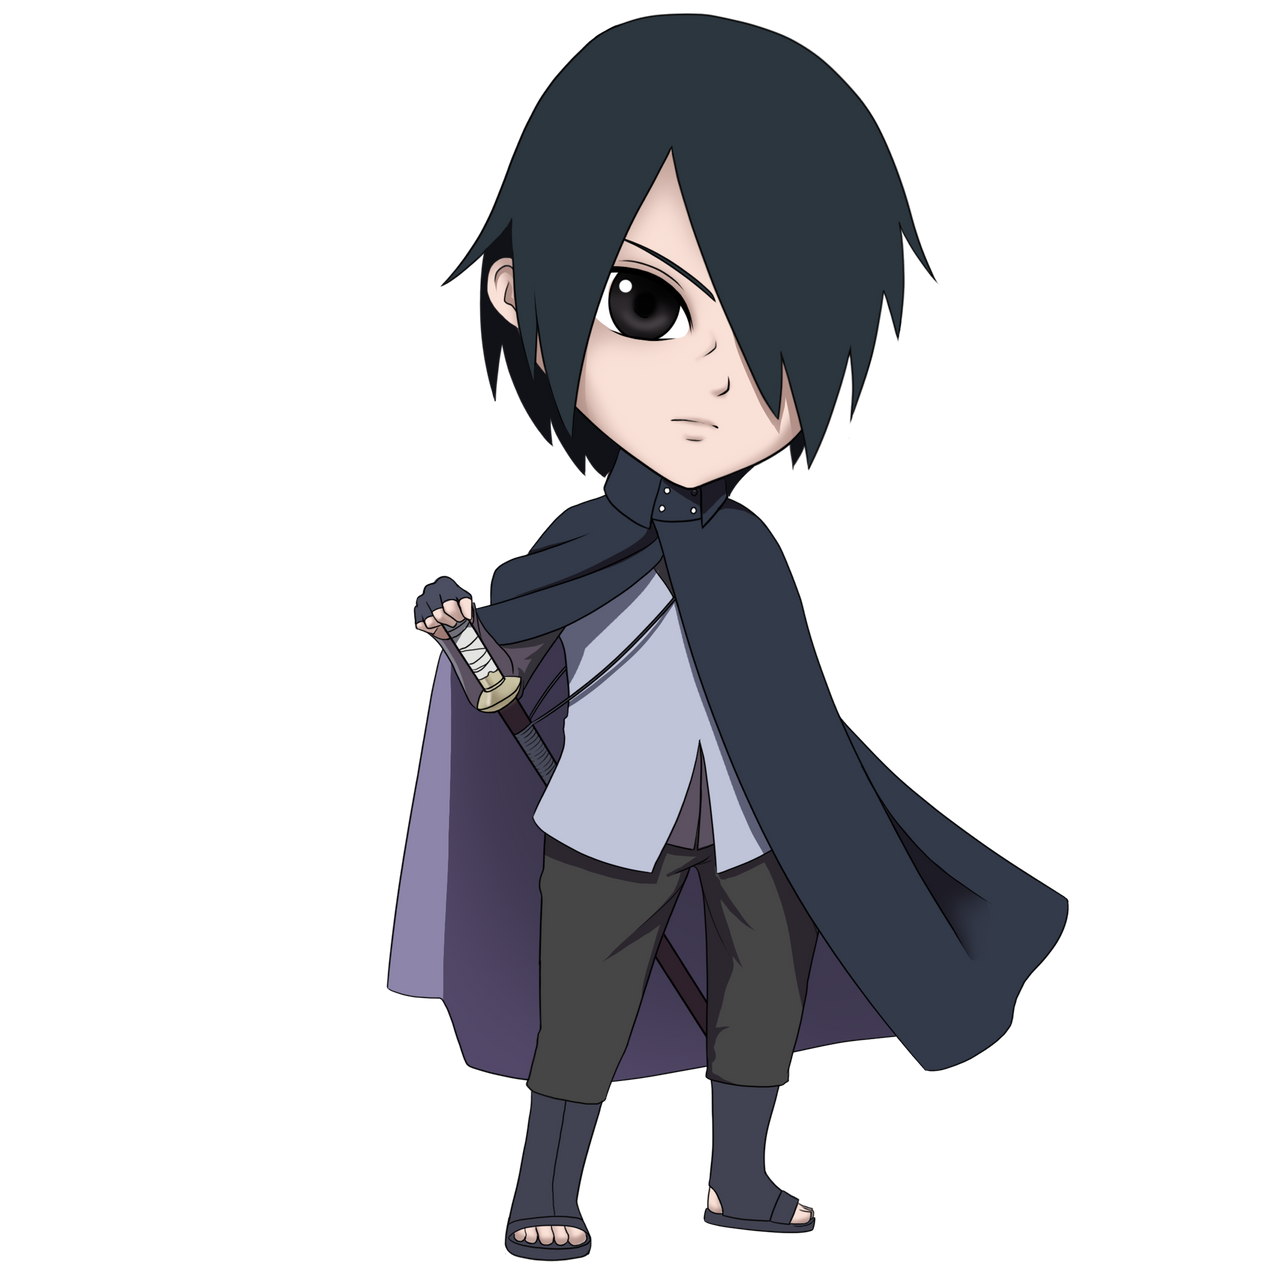 fanartadult sasuke by rekayuu on deviantart